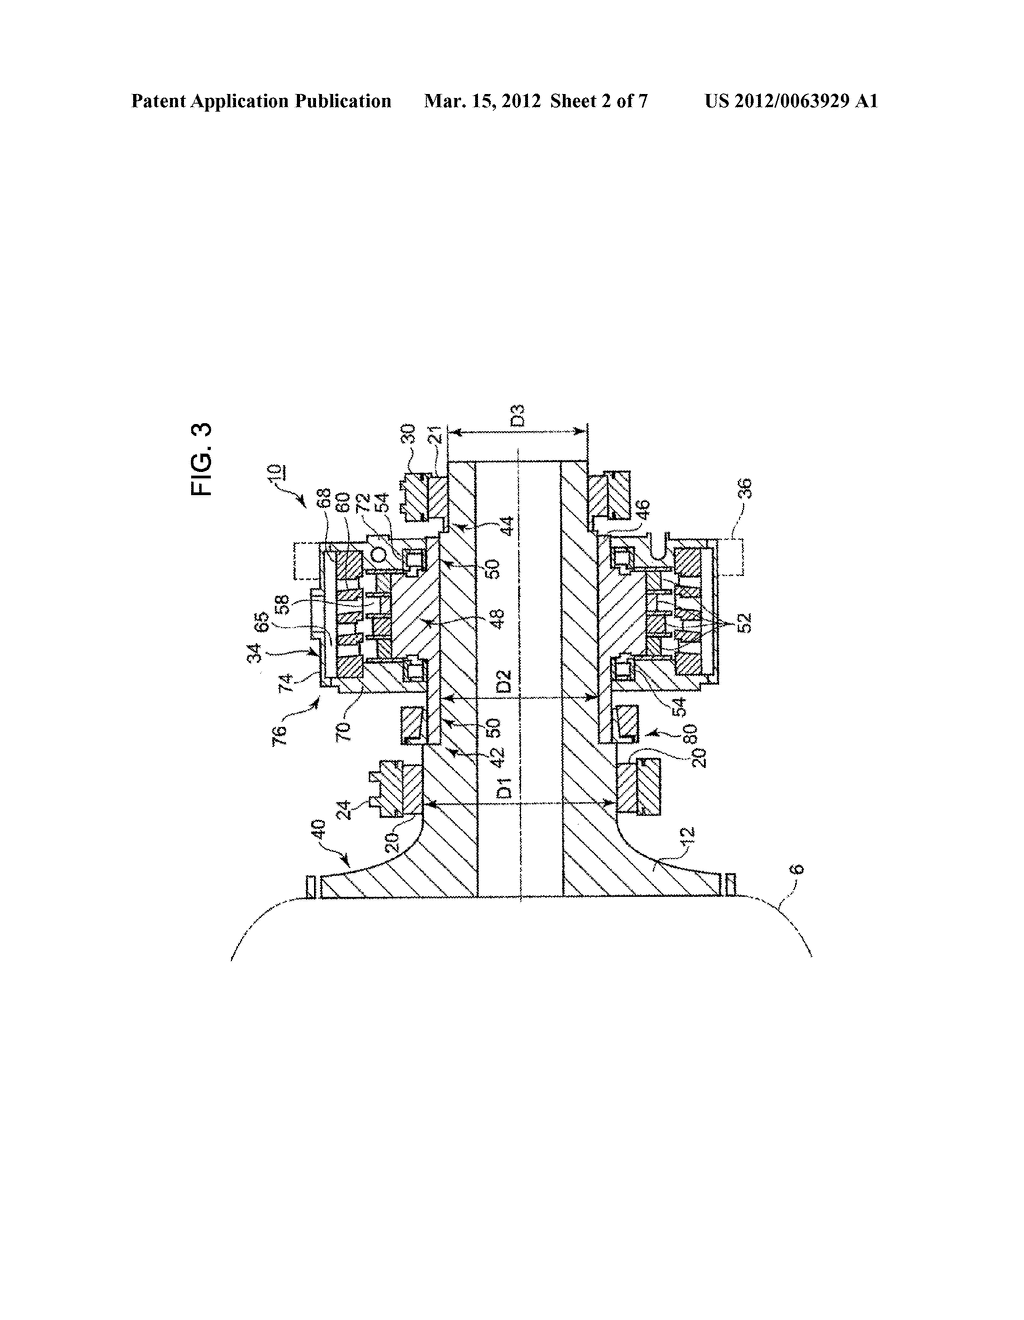 hight resolution of hydraulic pump structure for wind turbine generator or tidal current generator and method of mounting hydraulic pump diagram schematic and image 03